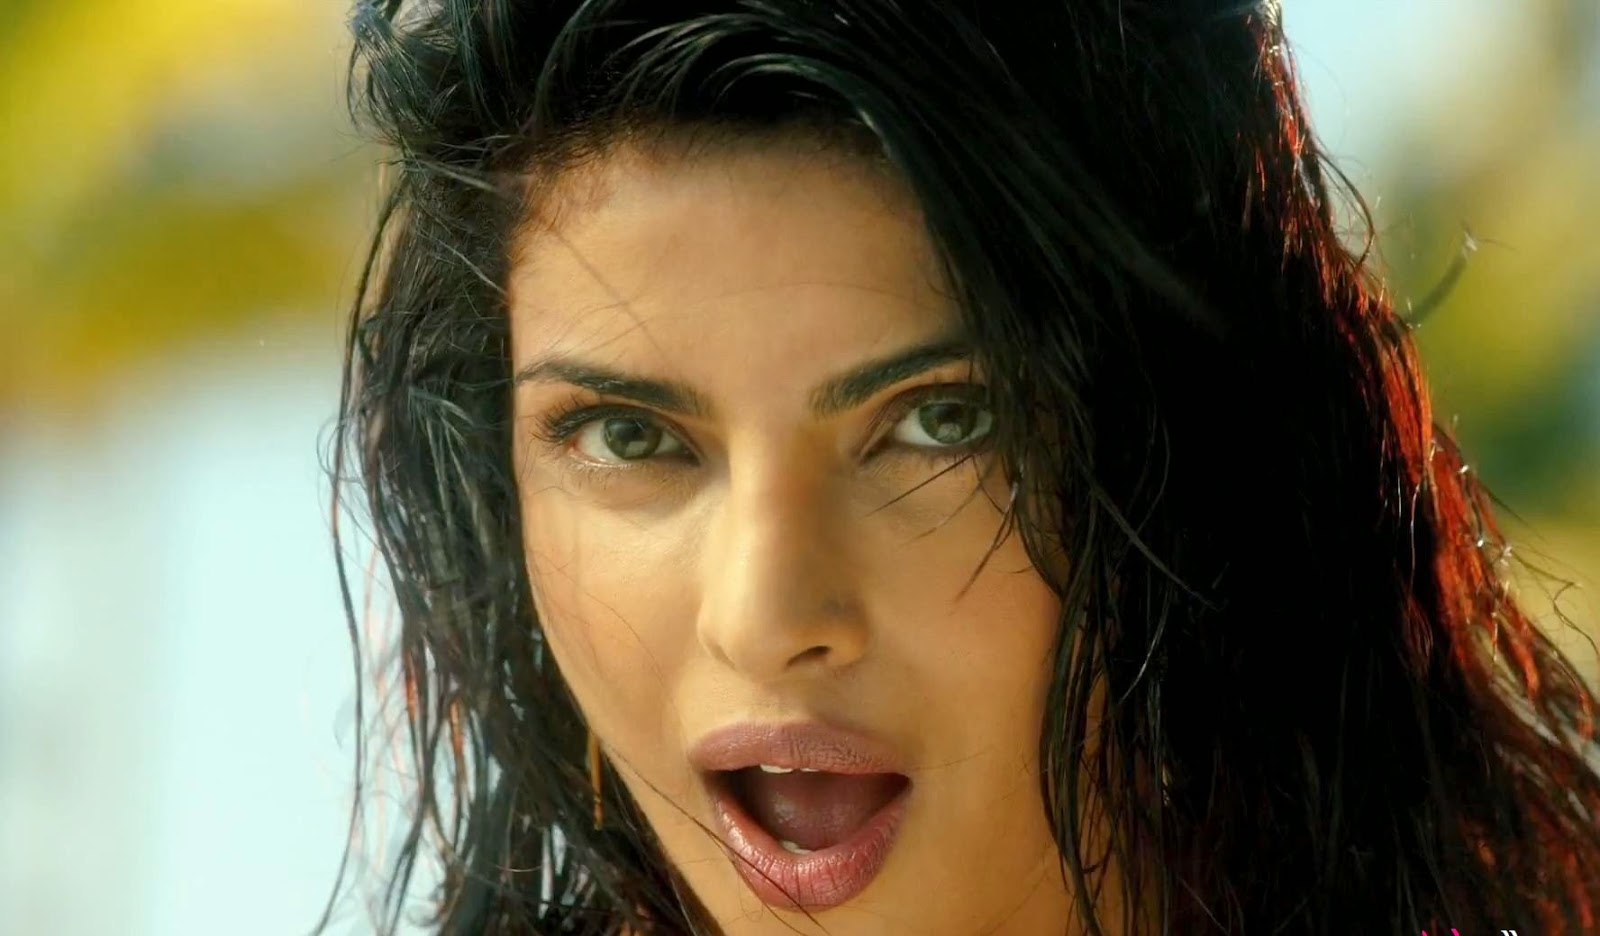 http://moviepicturess.blogspot.in/2014/10/priyanka-chopra.html